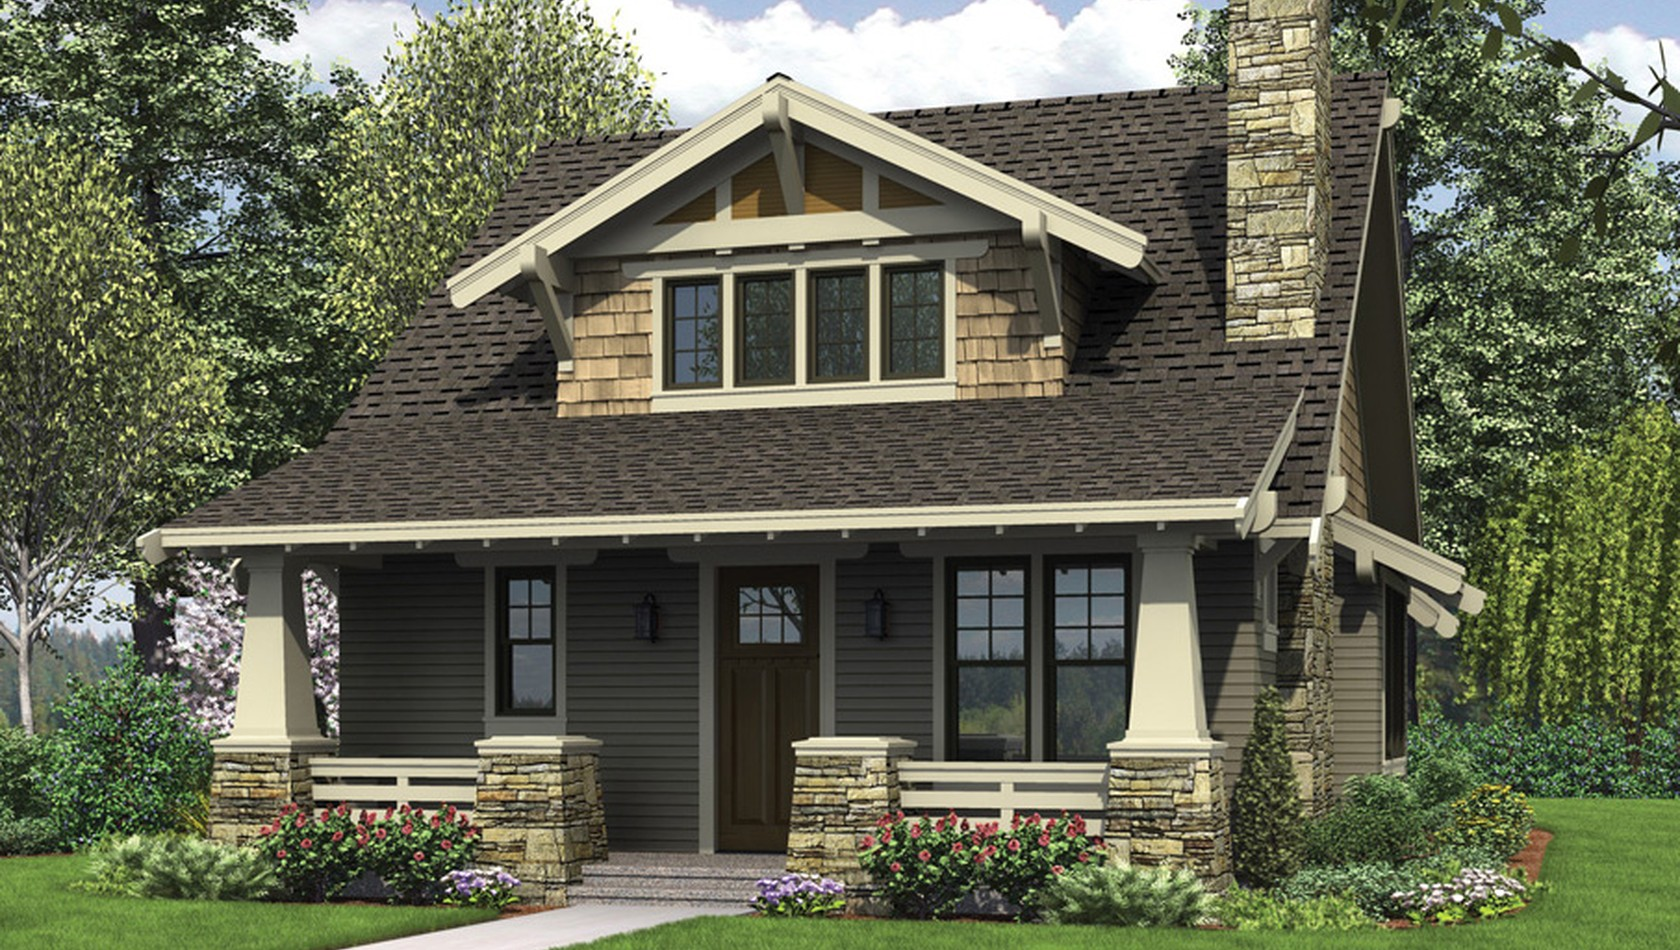 Main image for house plan 21145: The Morris